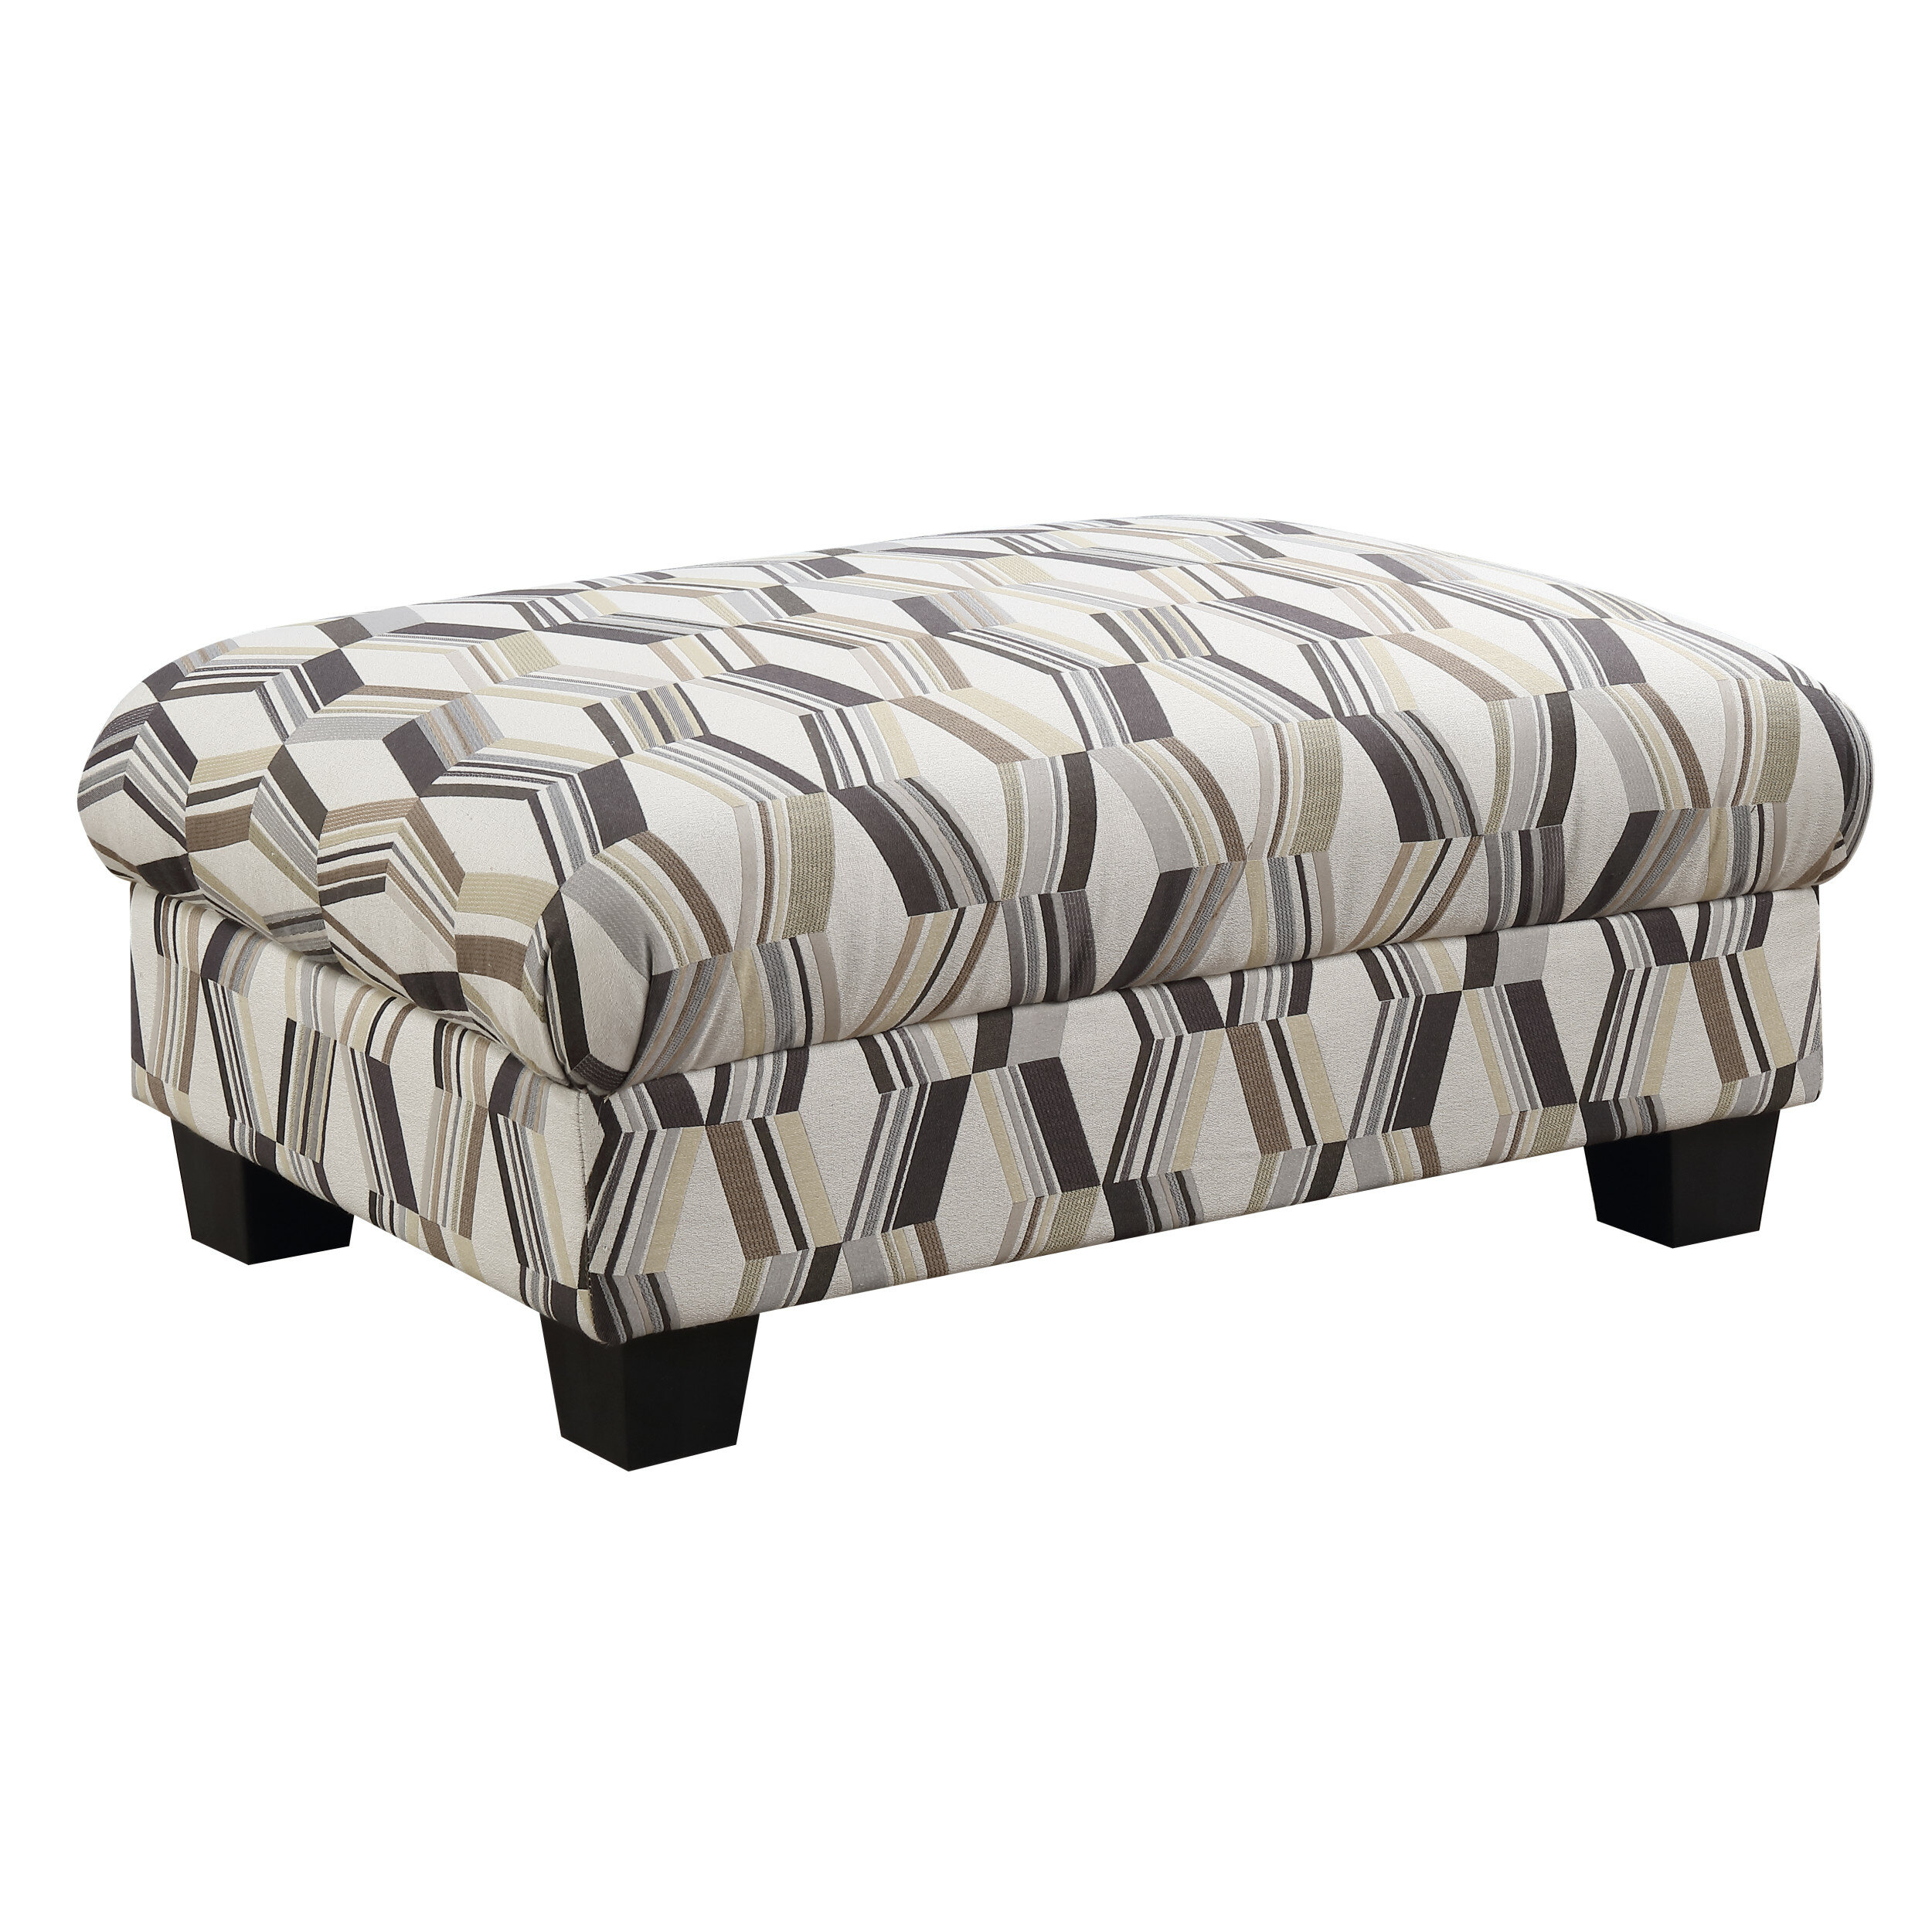 Ivy bronx kittle accent cocktail ottoman wayfair